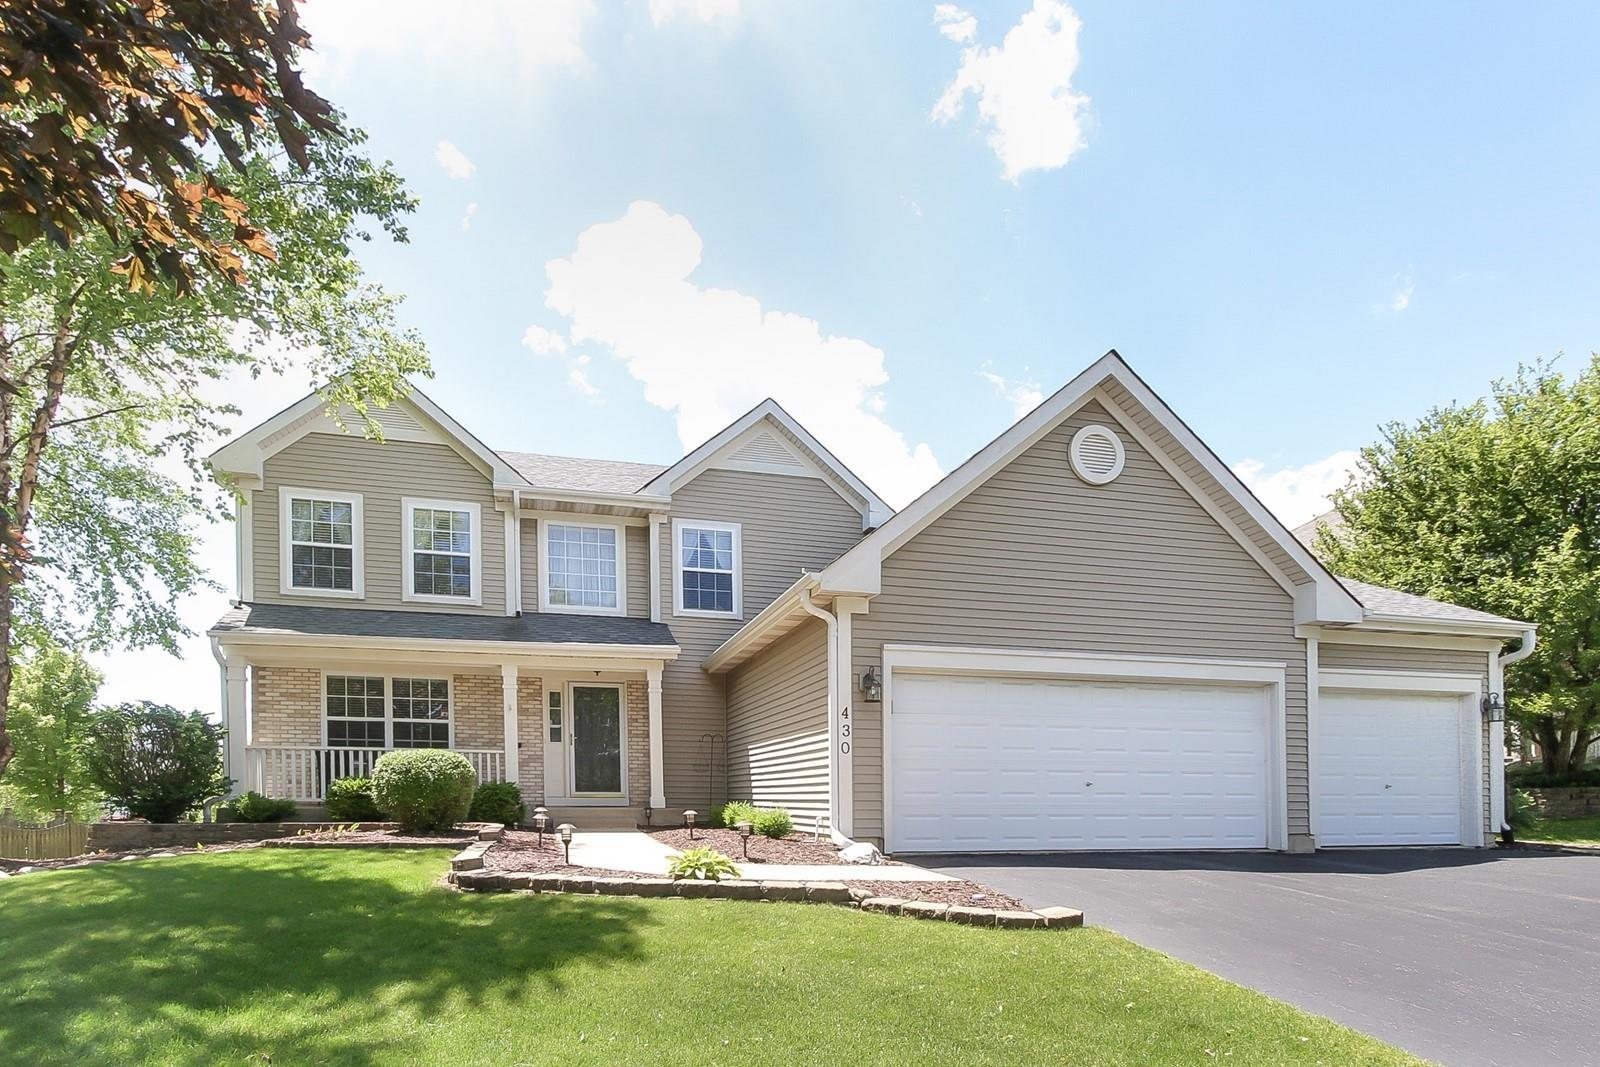 430 Winding Canyon Way, Algonquin, IL 60102 - #: 10746554